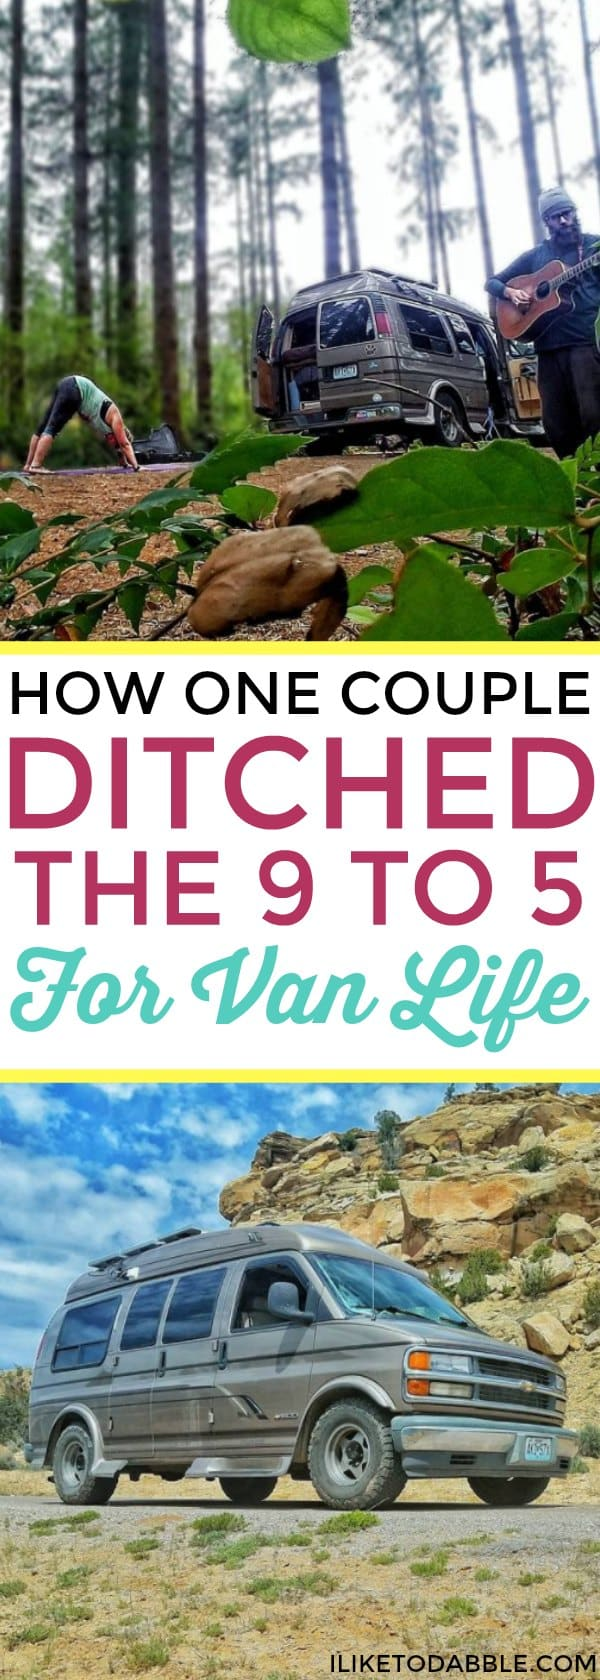 """Background of women doing a yoga pose and man playing guitar with a van in the woods with the title of the article in the front titled """"How one couple ditched the 9 to 5 for van life. Van life. Travel full time. Van lifers. Van life movement. Life of adventure"""" #vanlife #ditchthe9to5 #vanlifer #vanlifediaries #travelfulltime #vanlifemovement"""